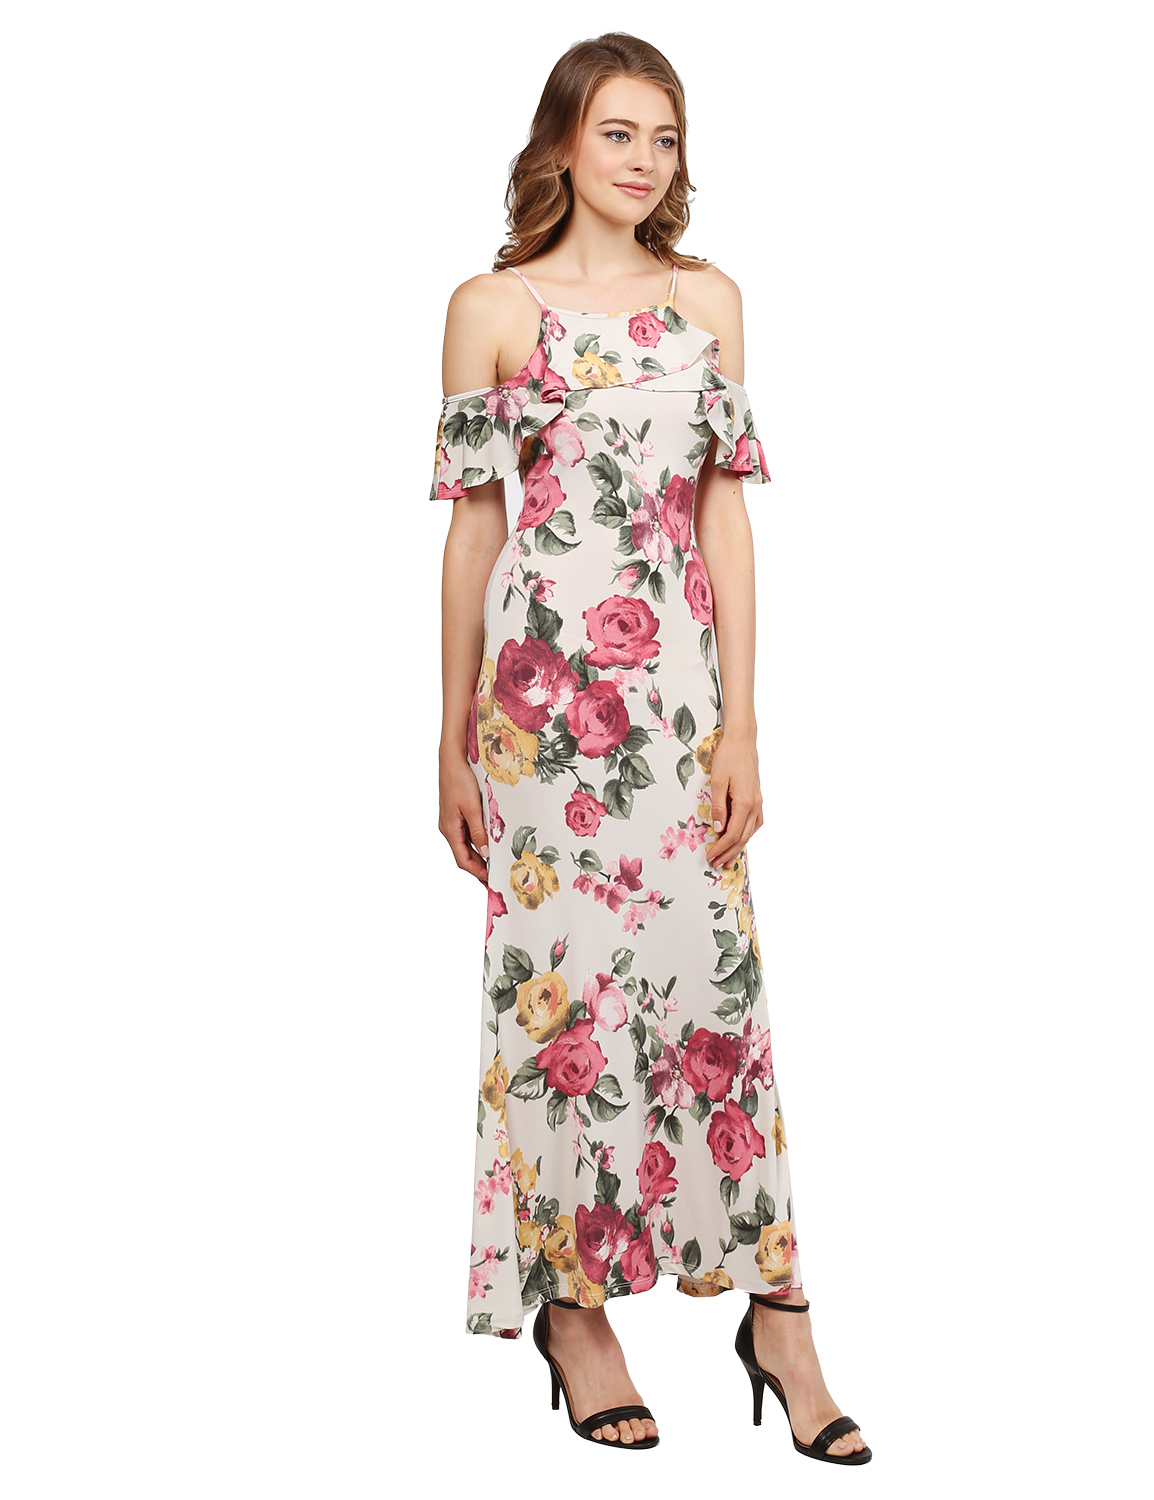 Beach Wedding Guest Dresses With Sleeves | perlabook.com